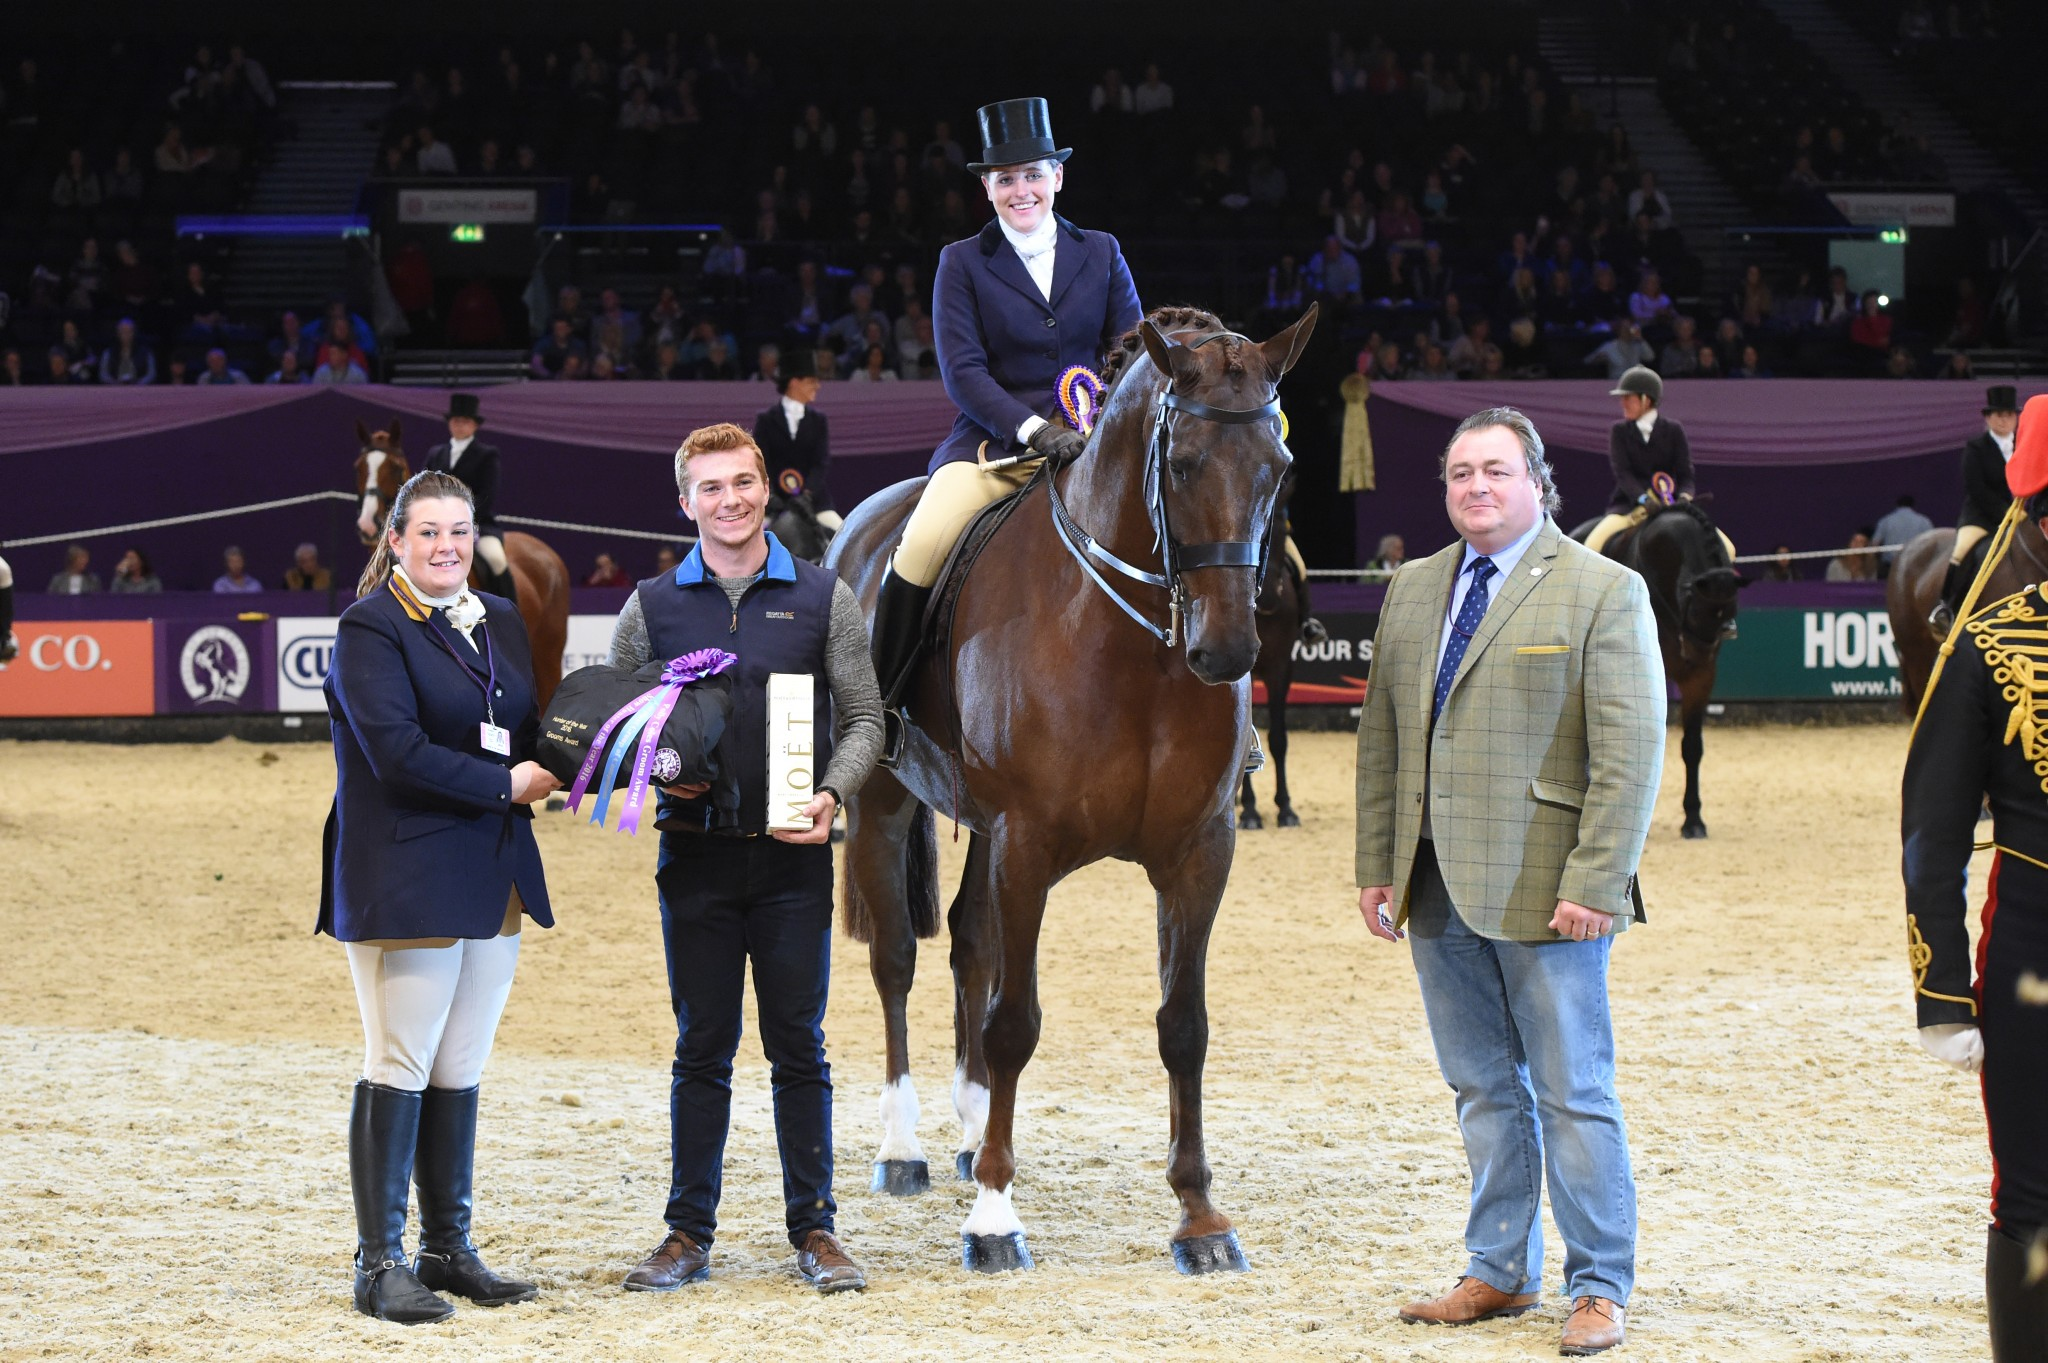 Guy Fawkes III Intermediate Show Hunter of the Year Champion - Meg Edmondson crowned the Guy Fawkes III Intermediate Show Hunter of the Year